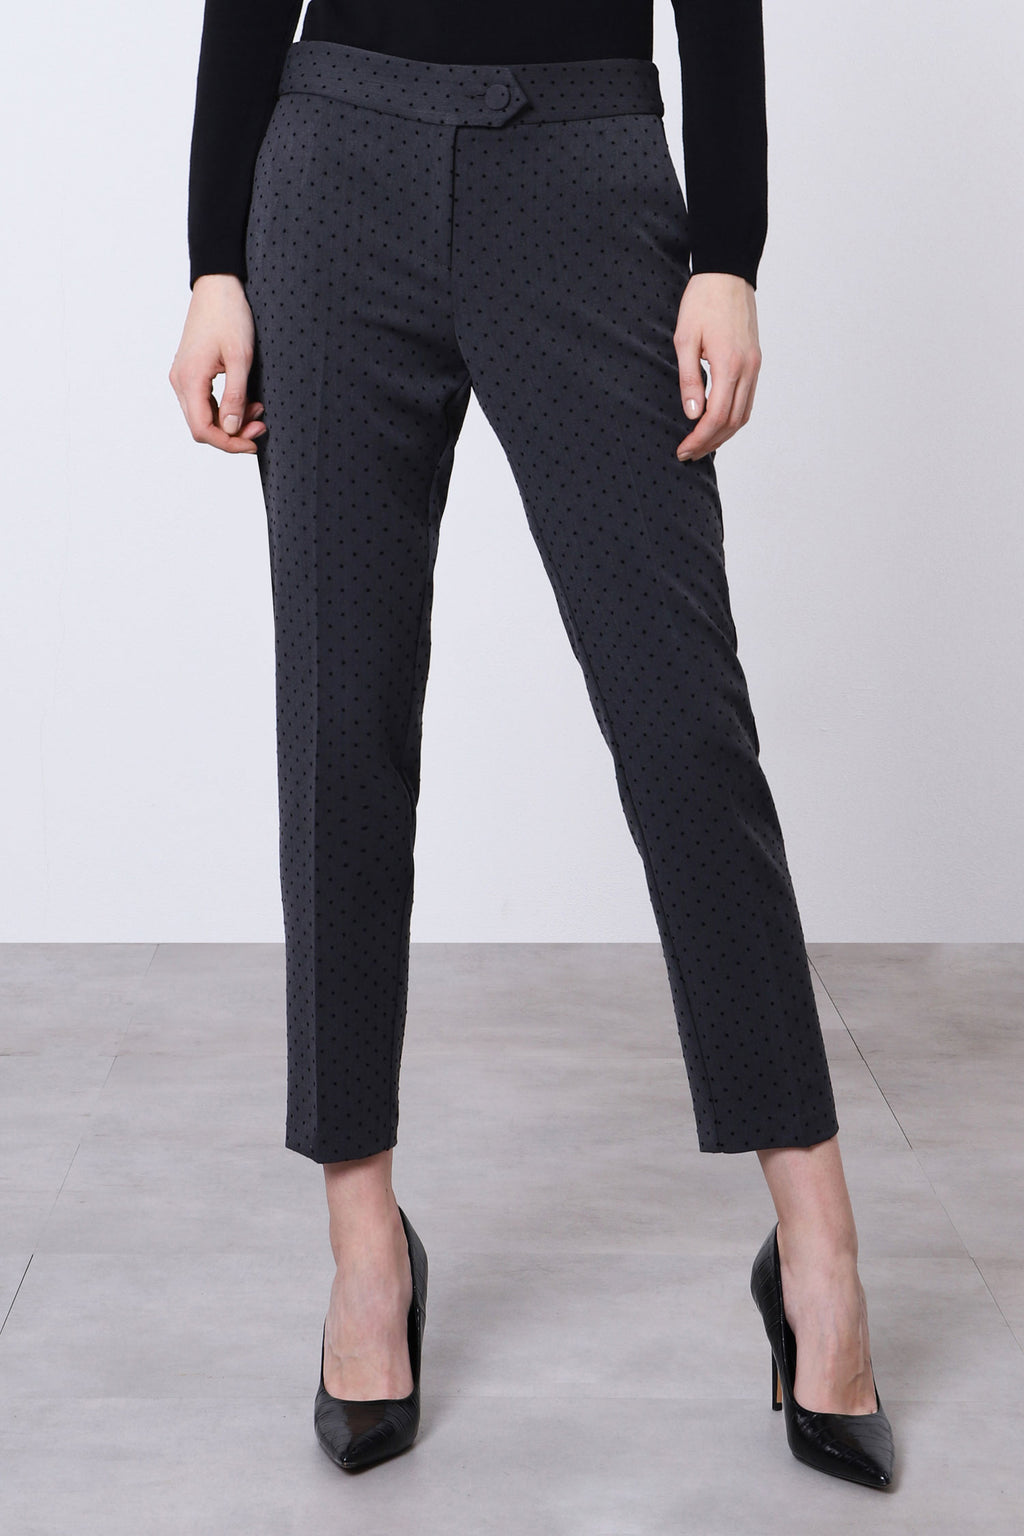 IMPERIAL | CLASSIC TROUSERS WITH MINI POLKA-DOT DESIGN